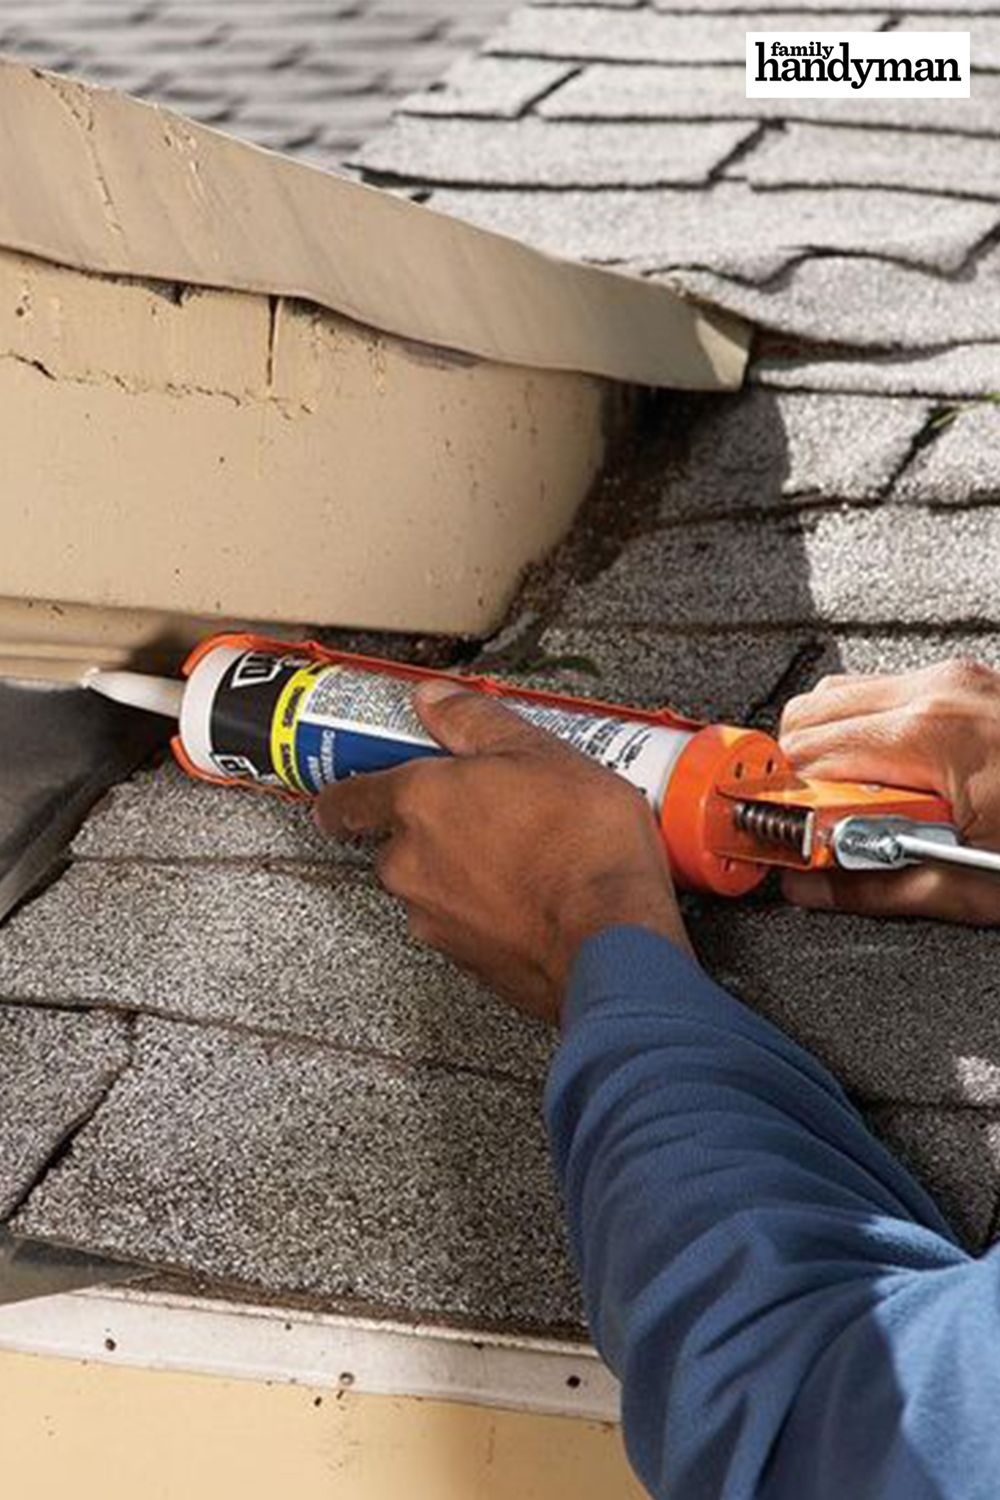 25 Hints For Fixing Roof And Gutter Issues Home Maintenance Roof Diy Home Repair